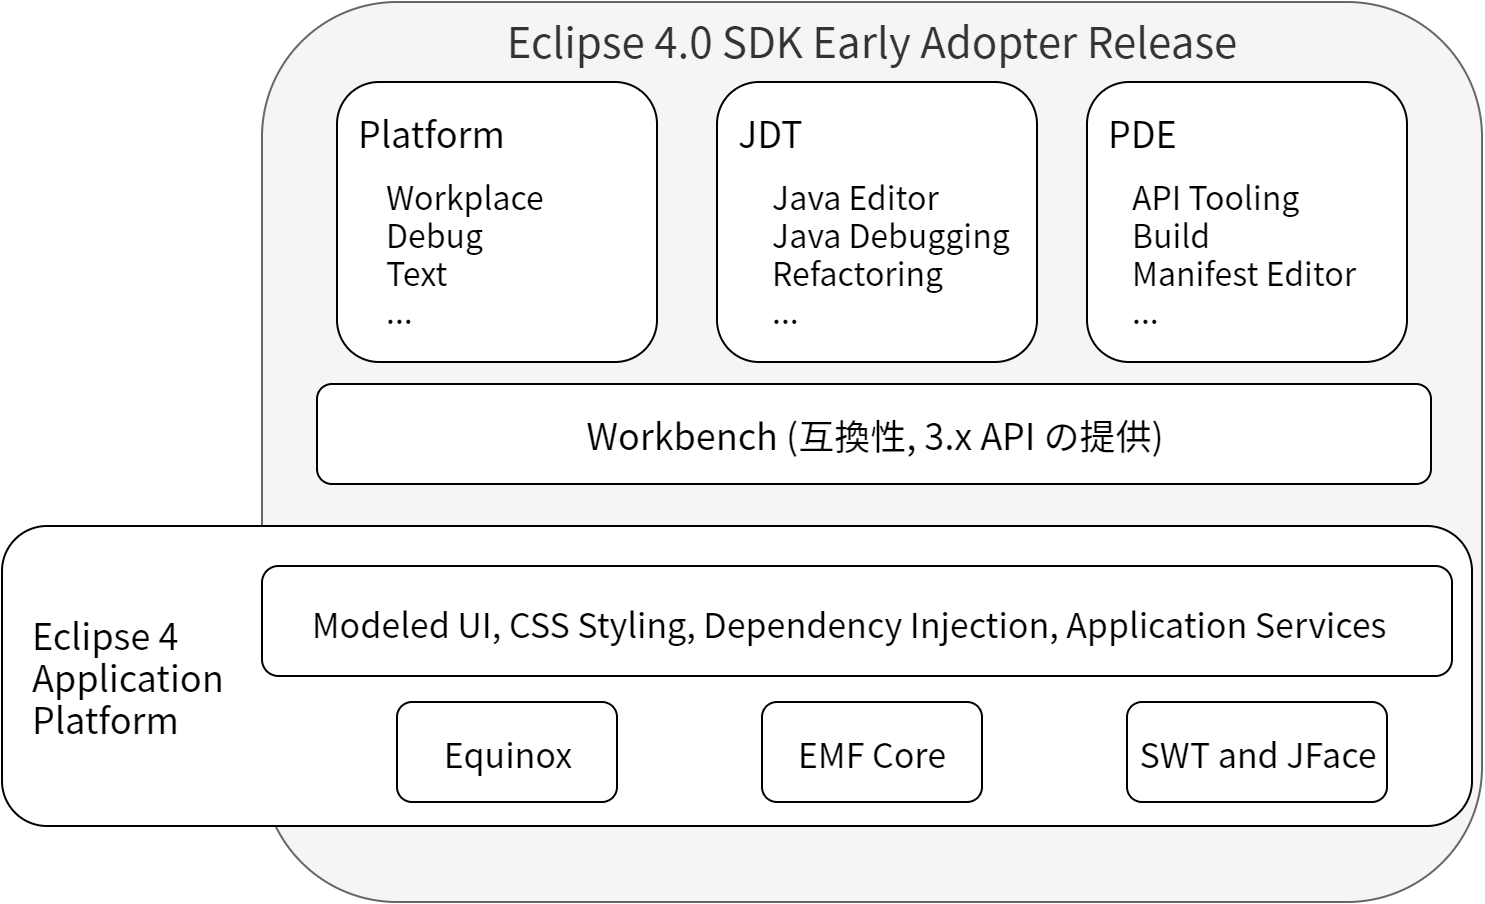 Eclipse 4.0 SDK Early Adopter Release